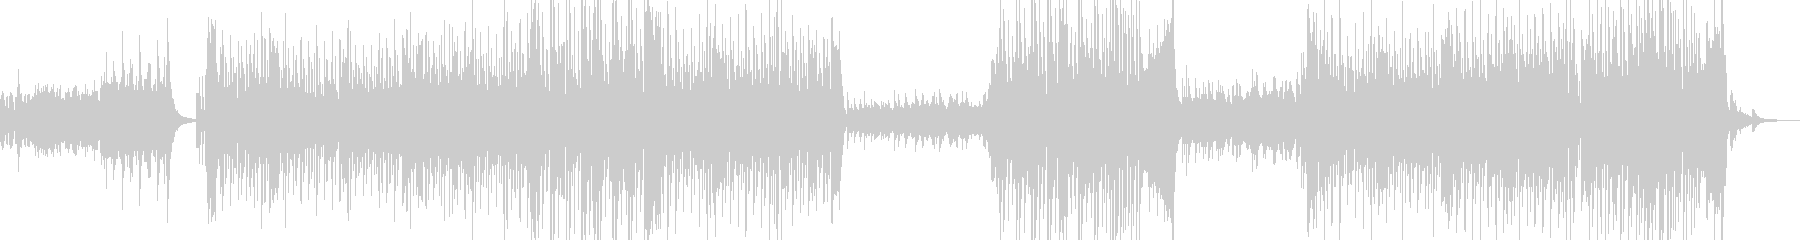 Latin BGM based on flamenco rhythm's unreproduced waveform